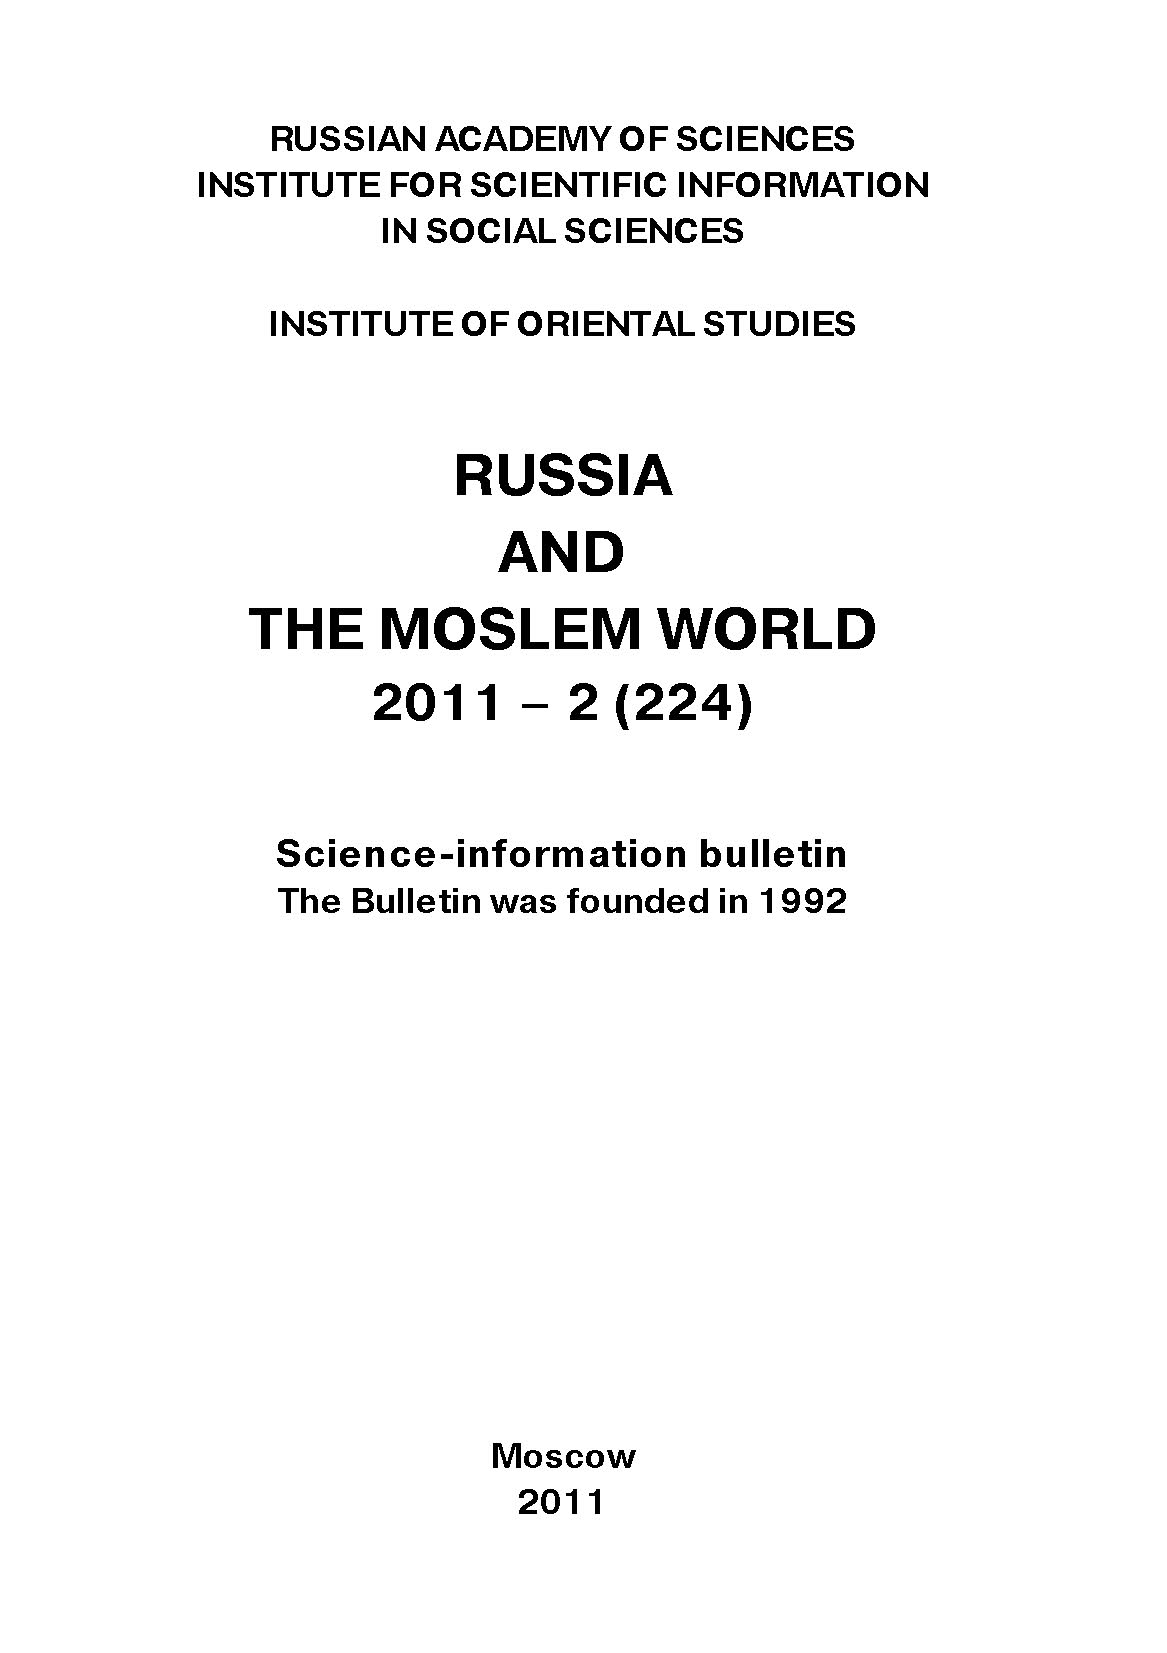 Сборник статей Russia and the Moslem World № 02 / 2011 сборник статей russia and the moslem world 04 2011